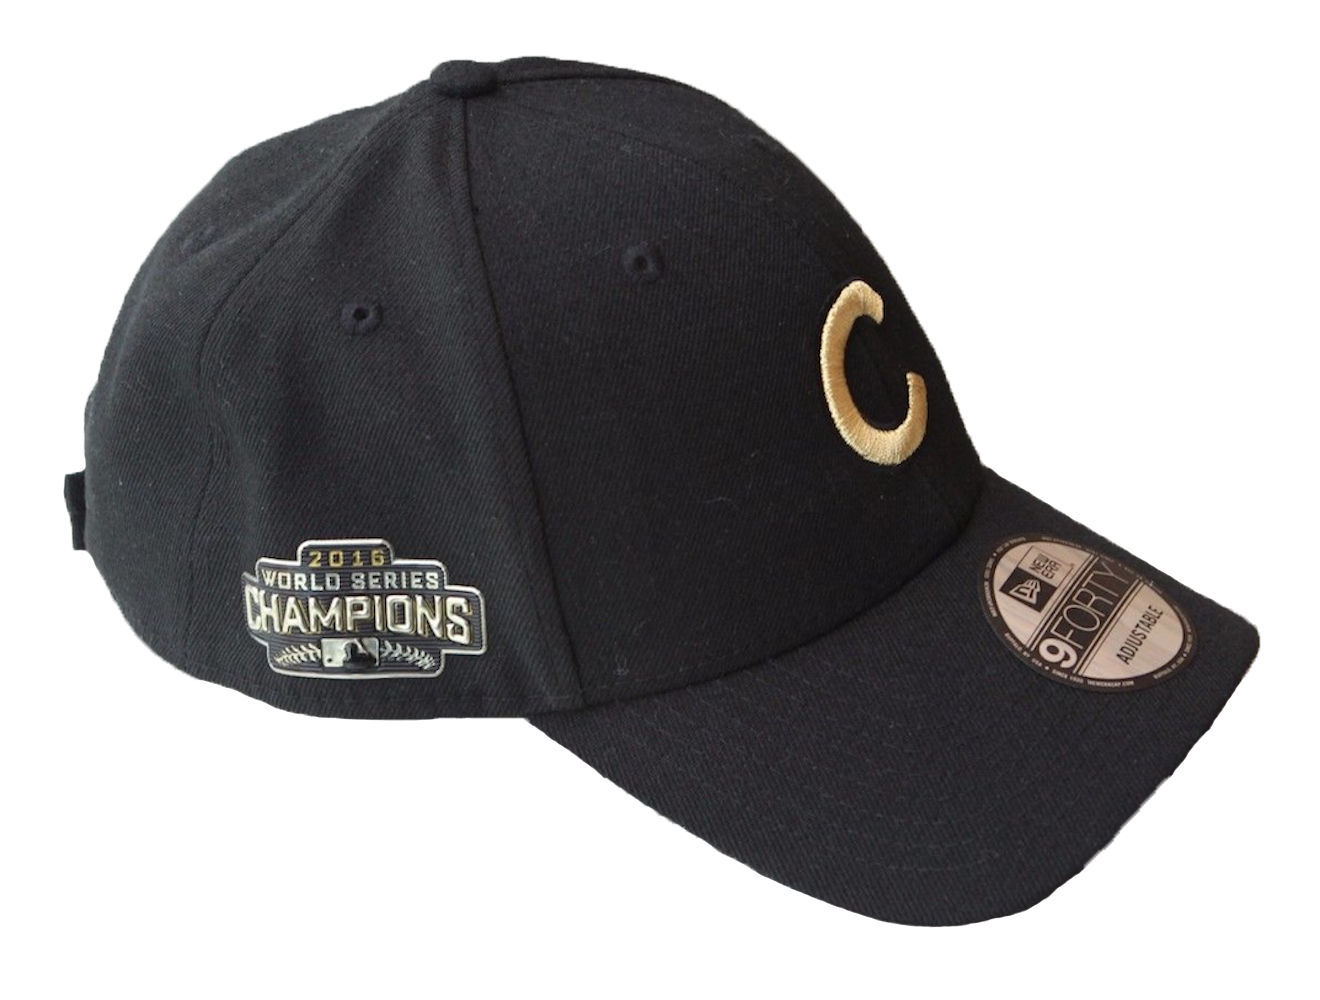 1d9f0eeef35 S l1600. S l1600. Previous. NEW ERA Chicago Cubs World Series Champions  Adjustable Cap Black Gold Adult MLB